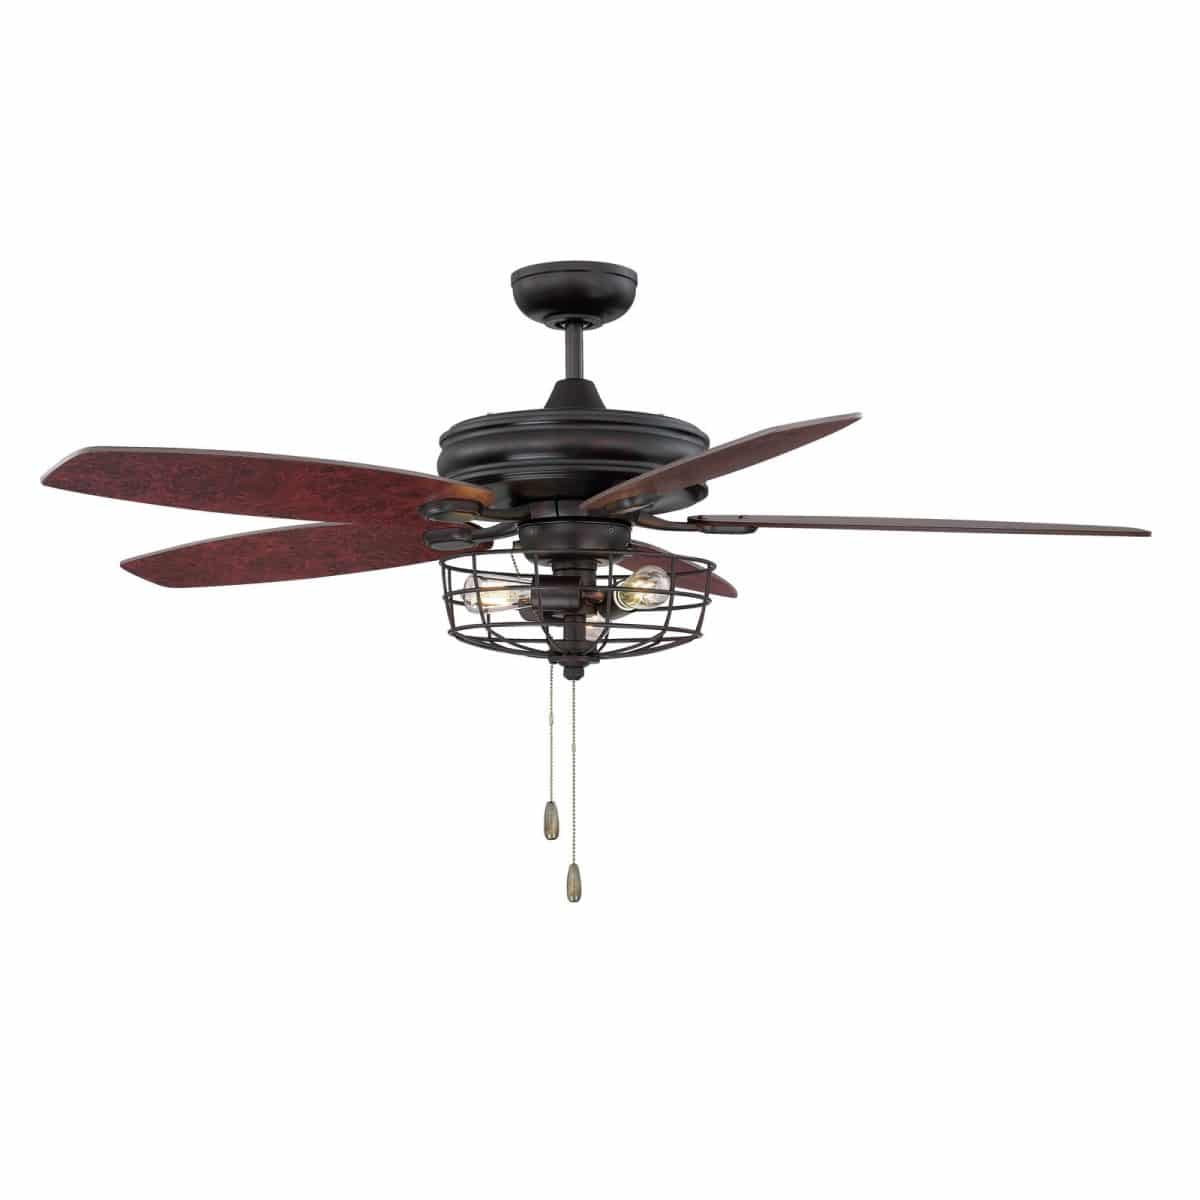 10 Affordable Modern Farmhouse Ceiling Fans (View 1 of 20)